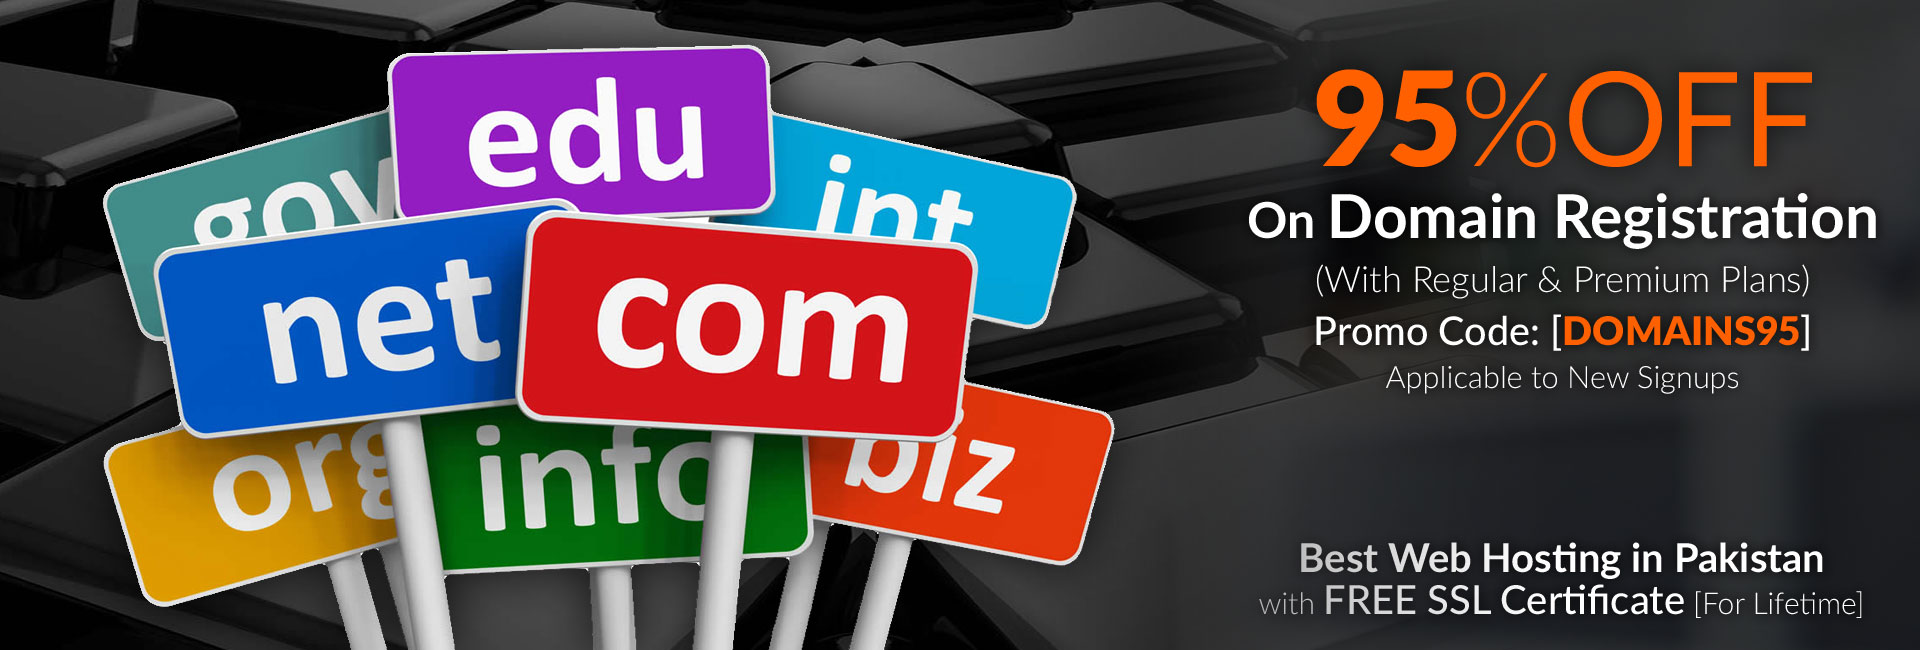 95-Percent-OFF-on-Domain-Registration-with-Best-Web-Hosting-in-Pakistan